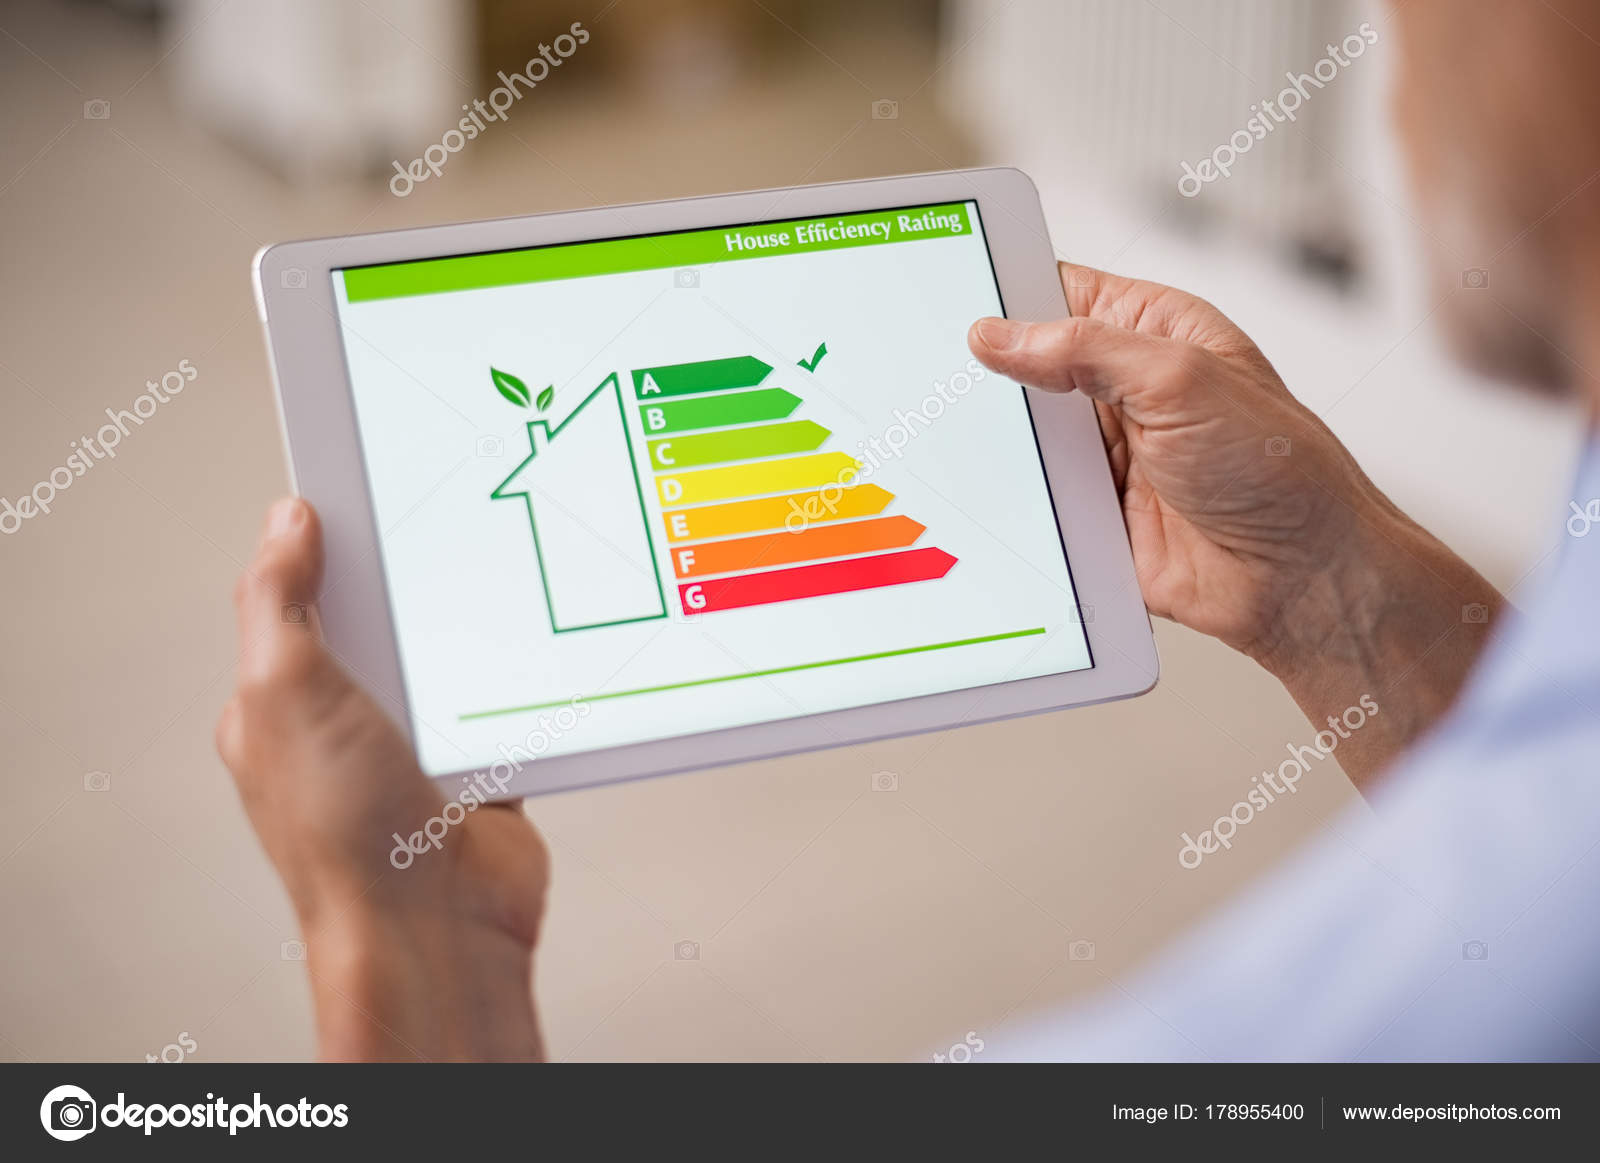 Captivating Detail Of House Efficiency Rating On Digital Tablet Screen. Concept Of  Ecological And Bio Energetic House. Energy Class. U2014 Photo By Ridofranz